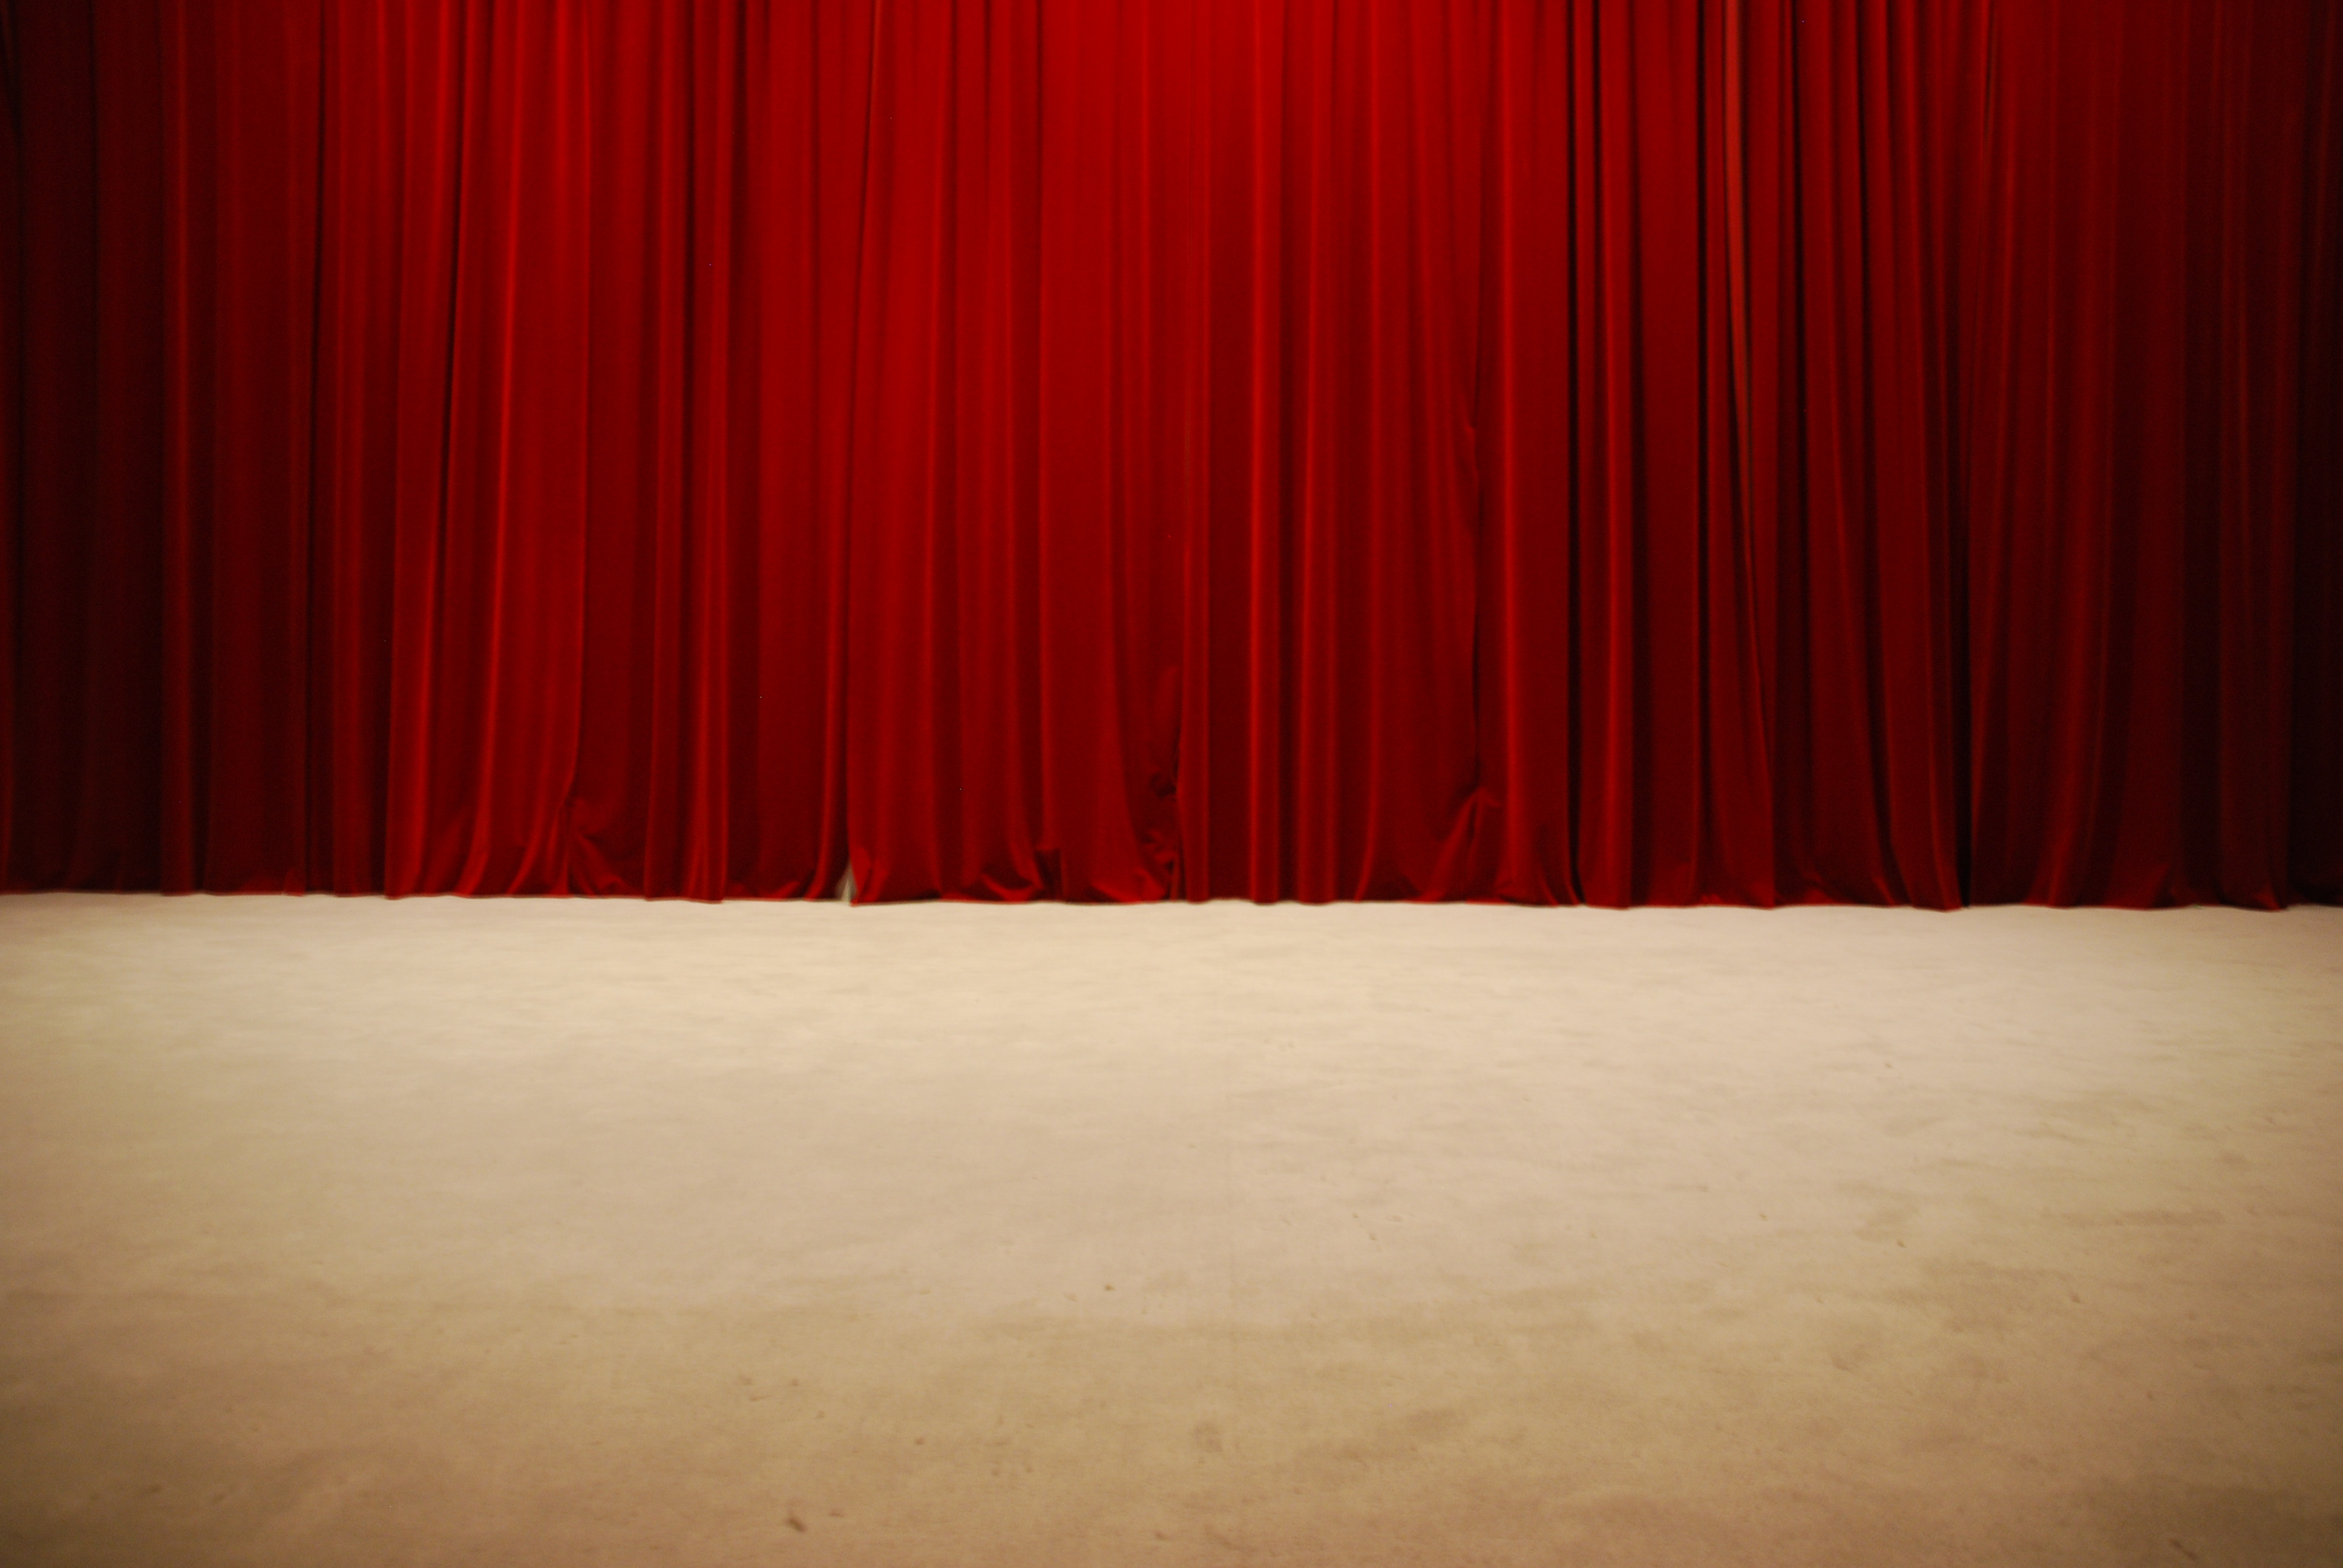 red-draped-theater-stage-curtains_Gyhl9R6_